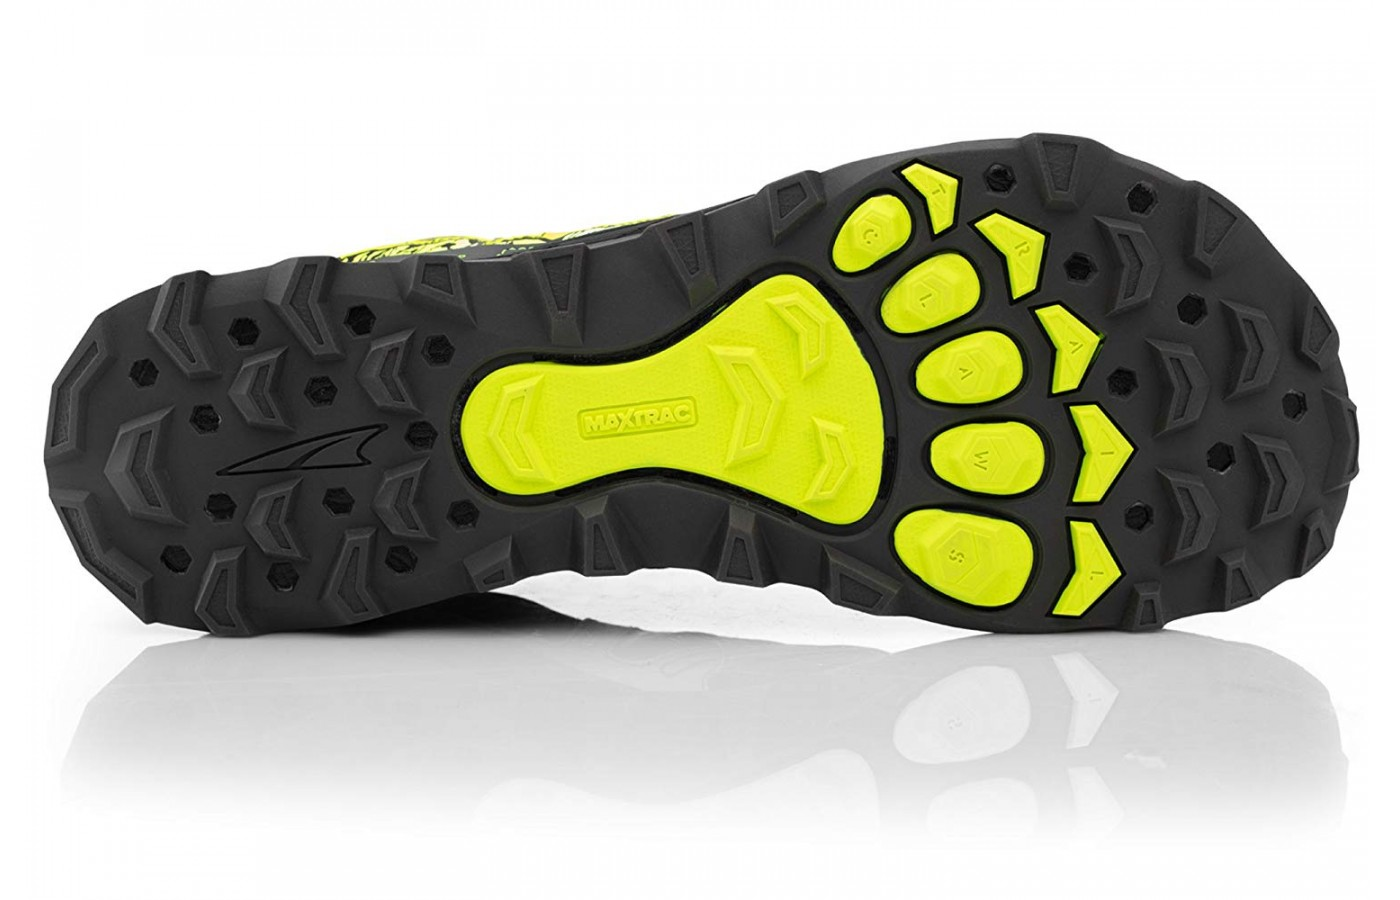 The Trailclaw has multidirectional lugs for a more versatile grip.